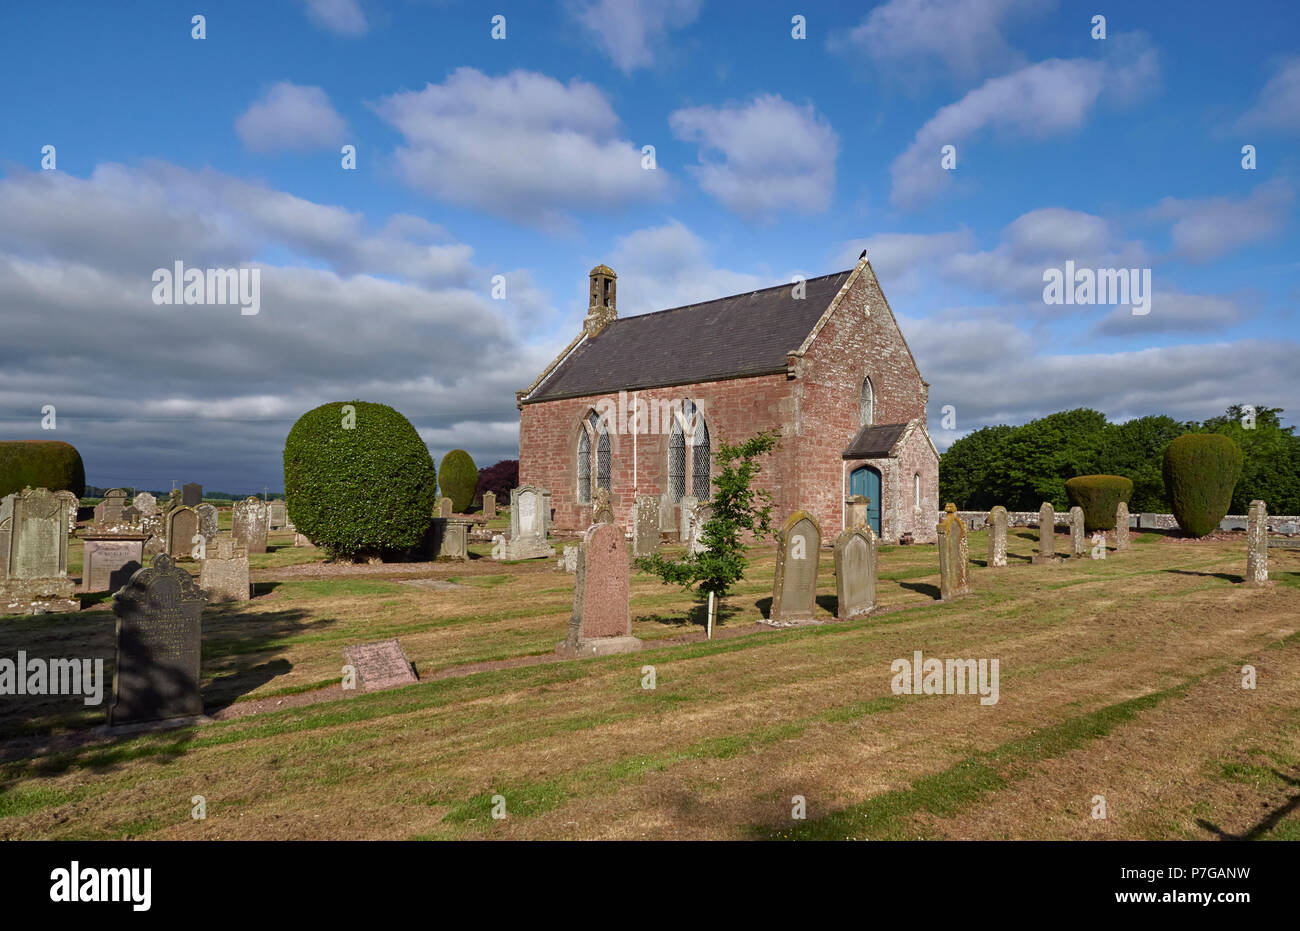 End on  view of the Parish Church of Stracathro with its surrounding well tended Graveyard enclosed by a Drystone Wall. Stracathro, Angus, Scotland. - Stock Image